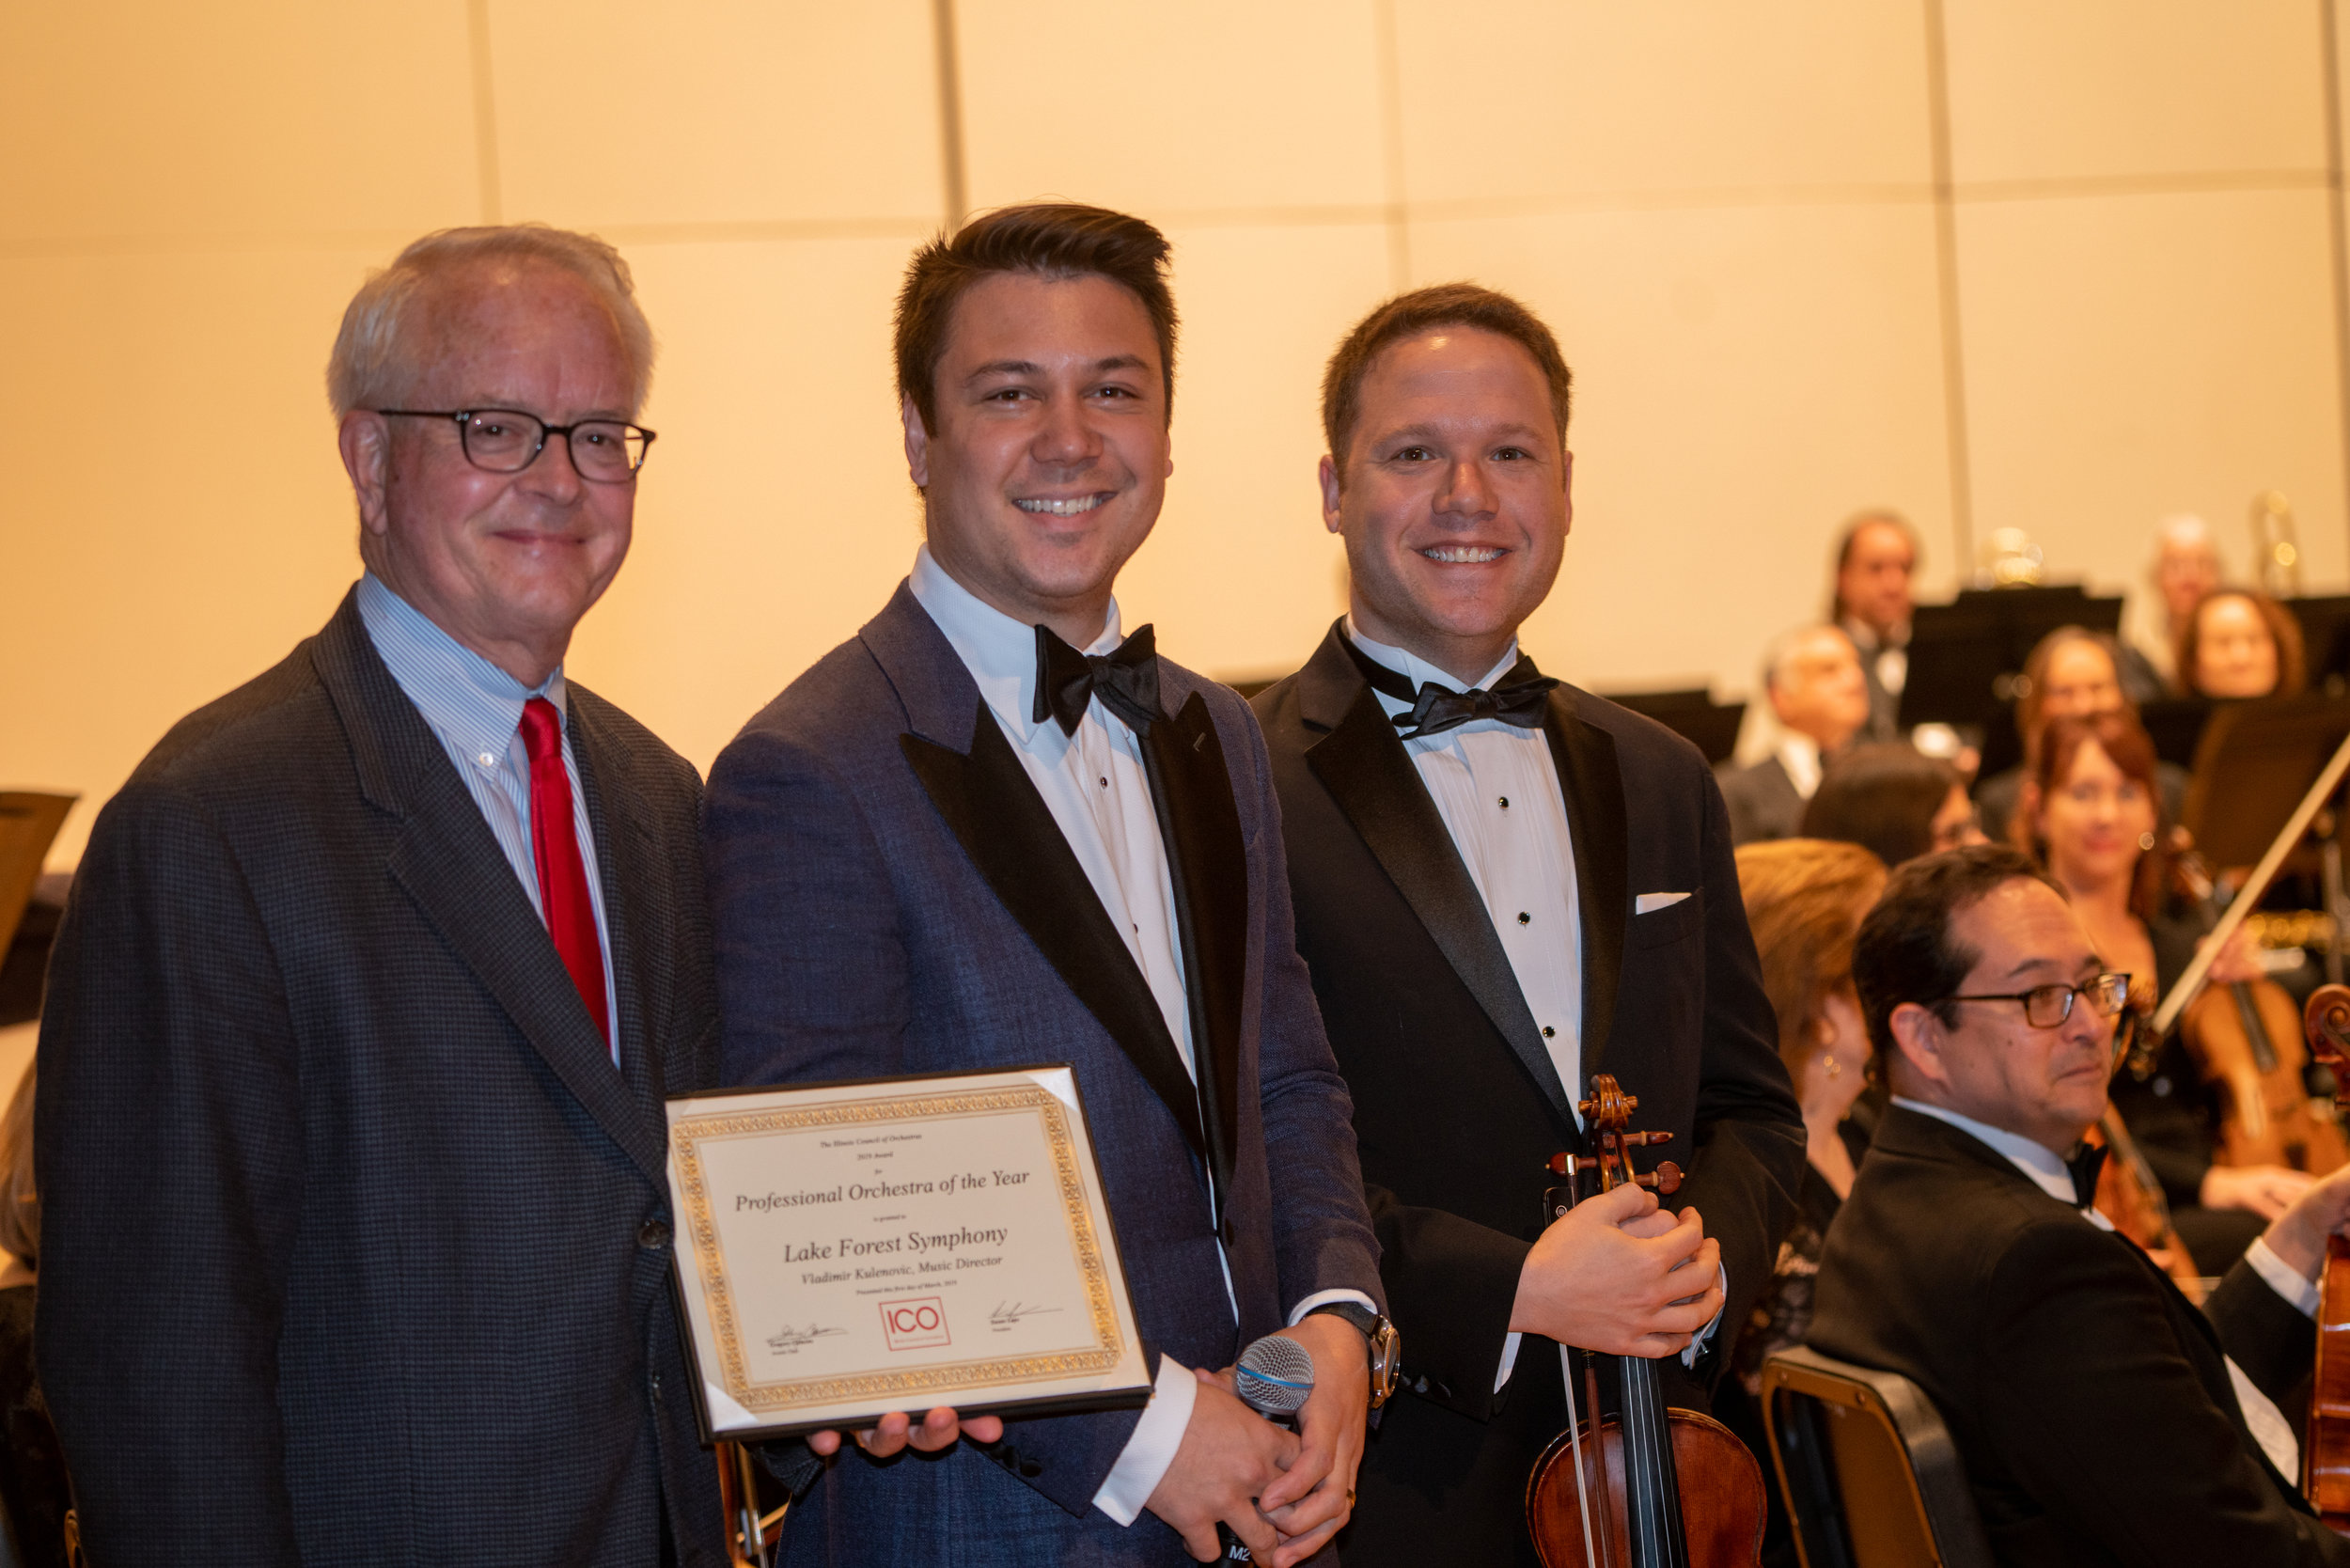 Executive Director Tim Corpus and Concertmaster Netanel Draiblate accept the award for Orchestra of the Year from Tom Sharp and the Illinois Council of Orchestras